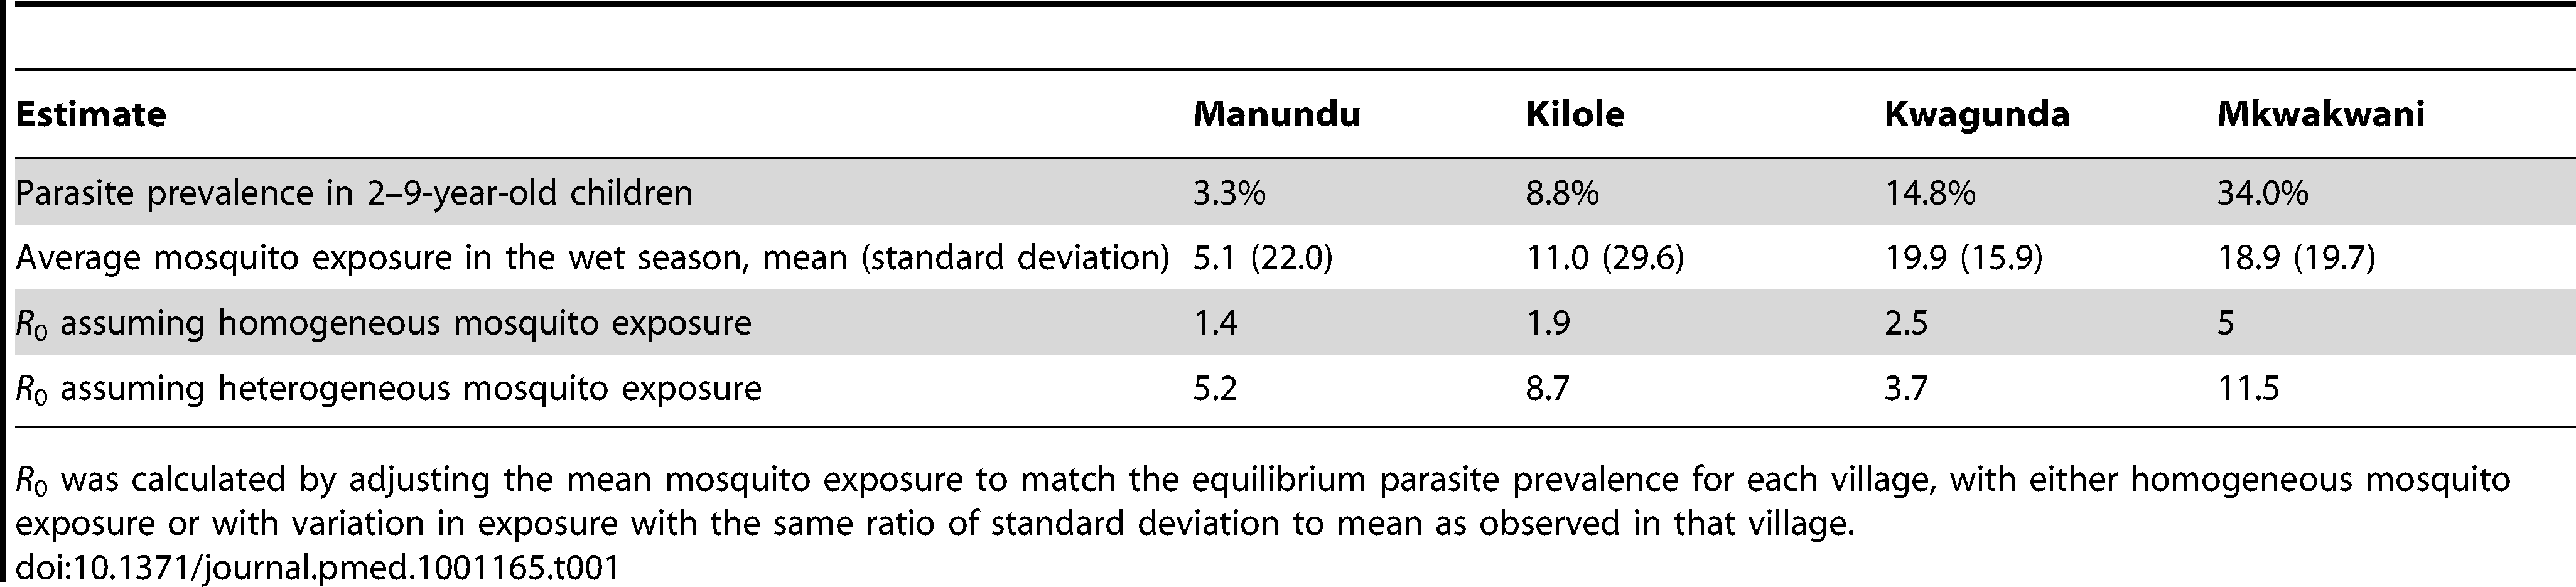 Estimates of the basic reproductive number (<i>R</i><sub>0</sub>) for a given parasite prevalence and heterogeneous mosquito exposure in four villages in northern Tanzania.